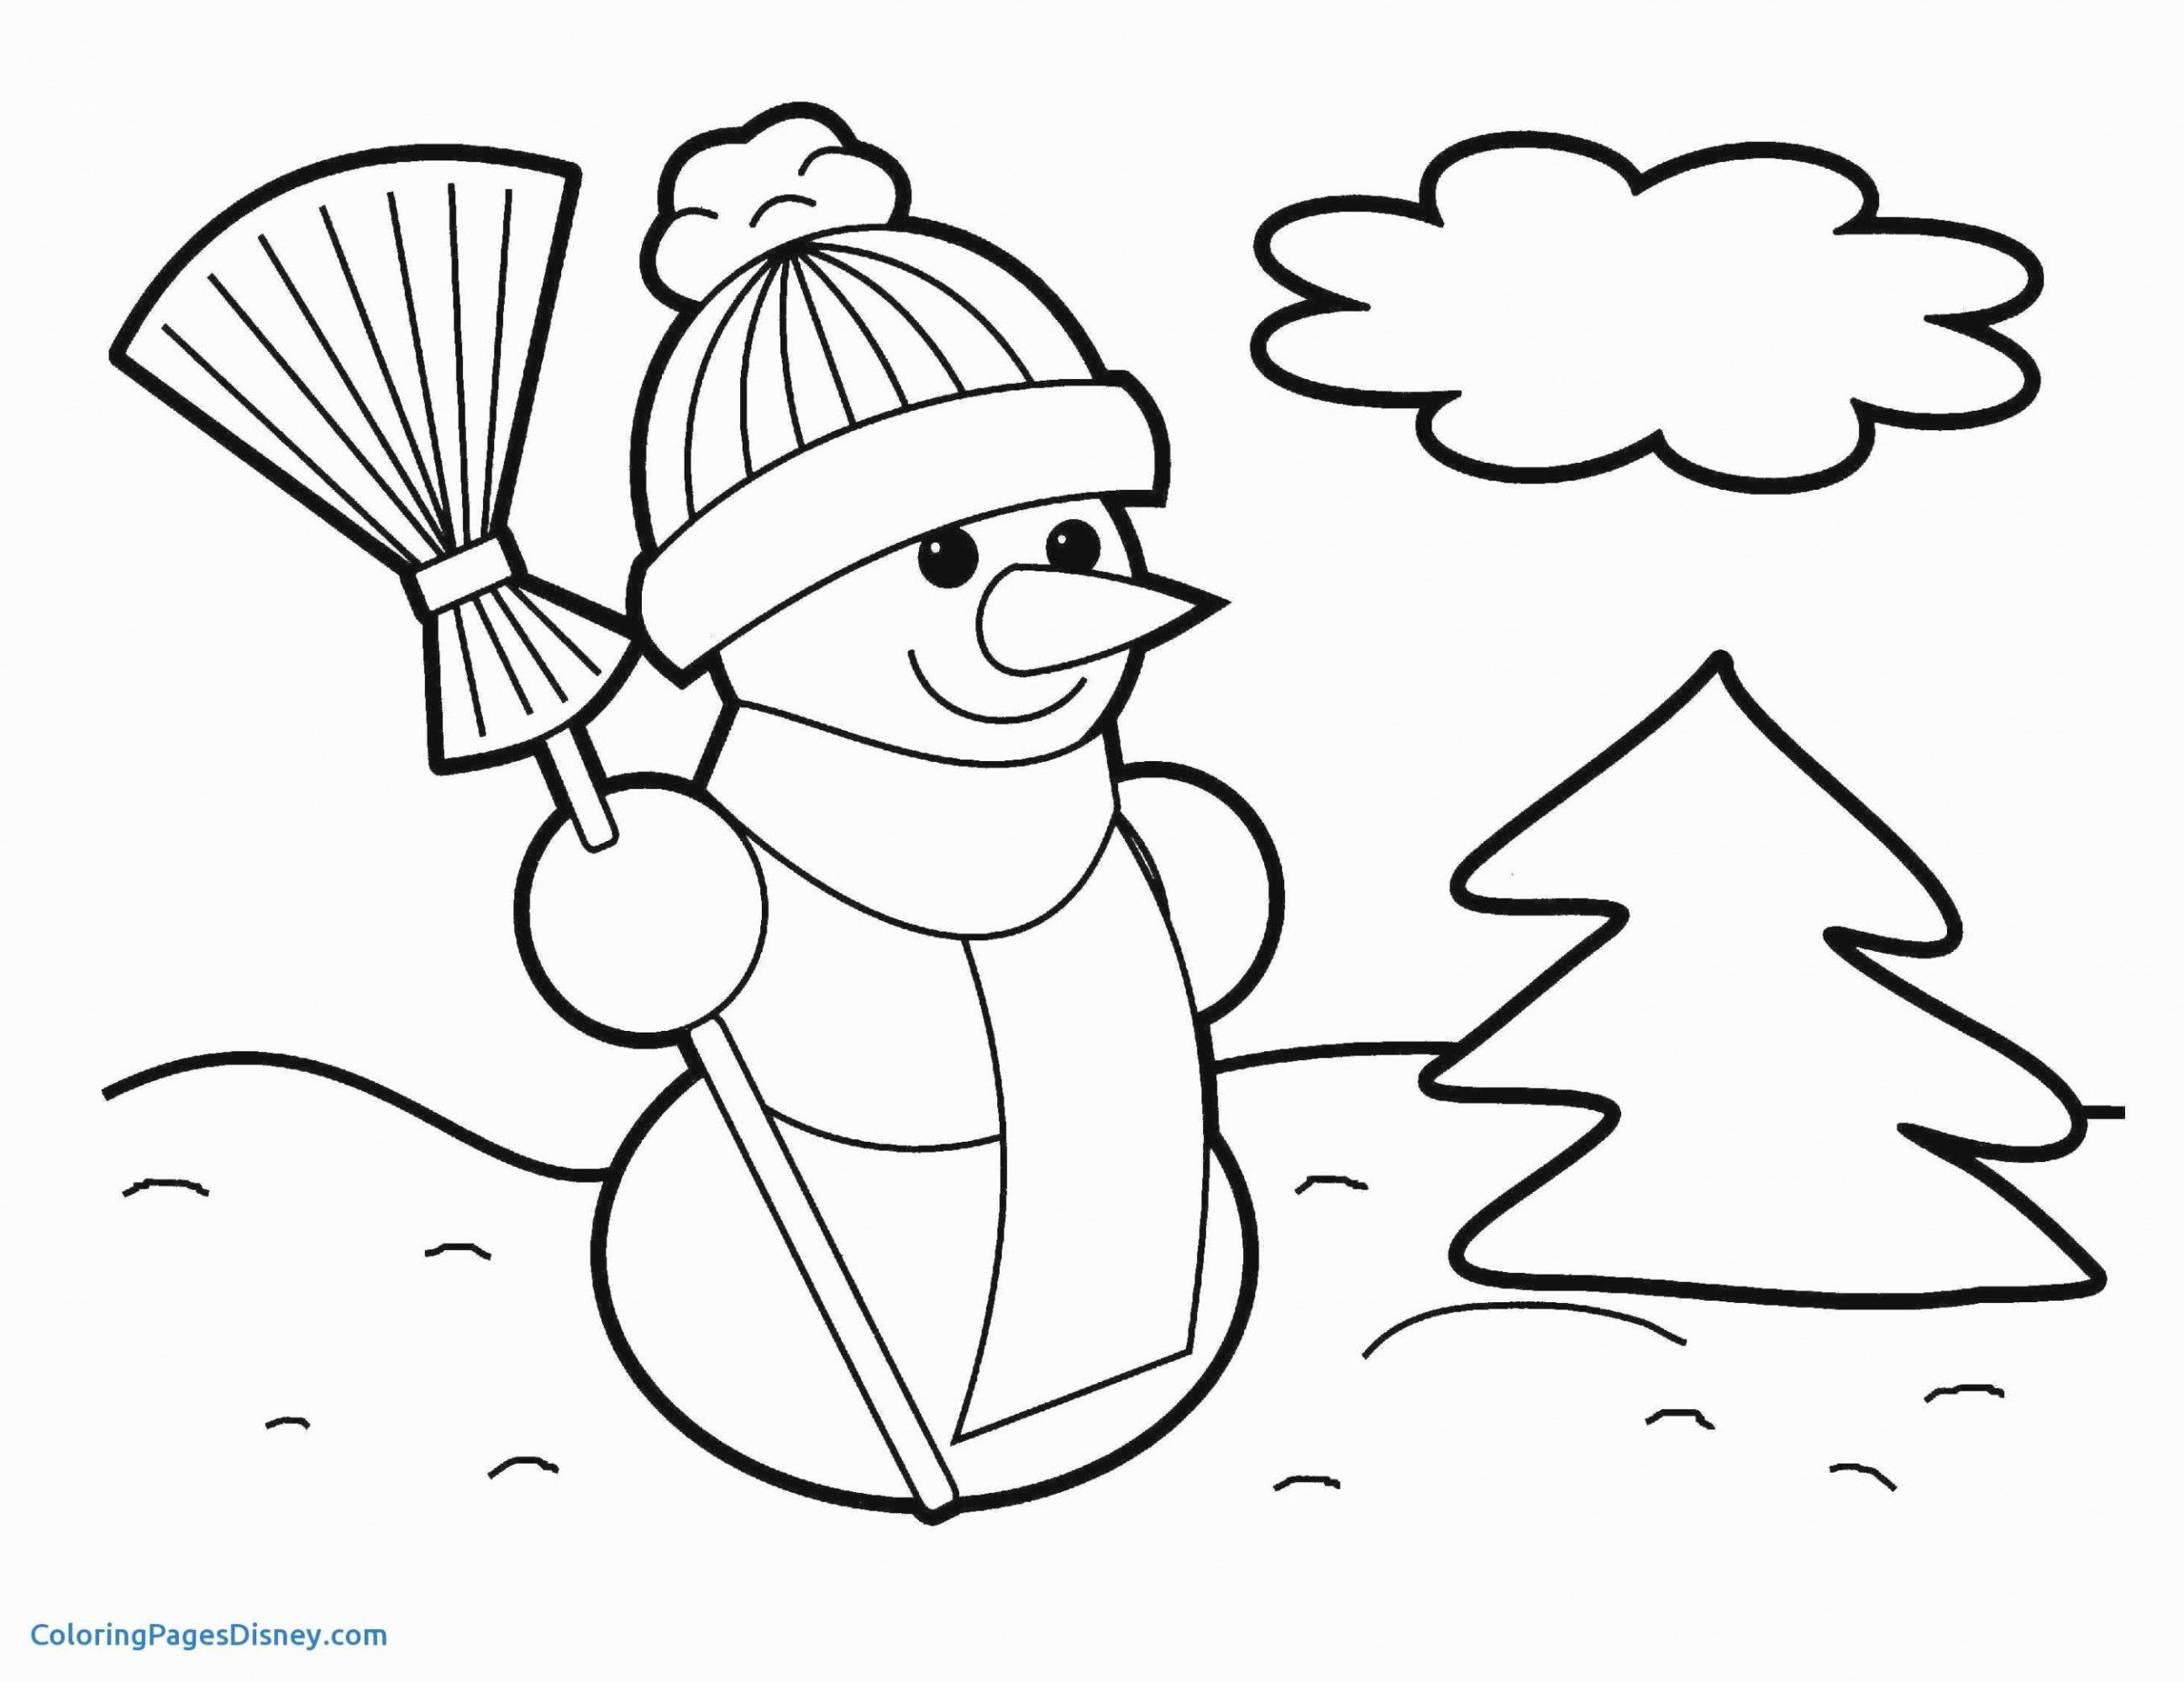 Coloring Pages Teddy Bear In 2020 Snowman Coloring Pages